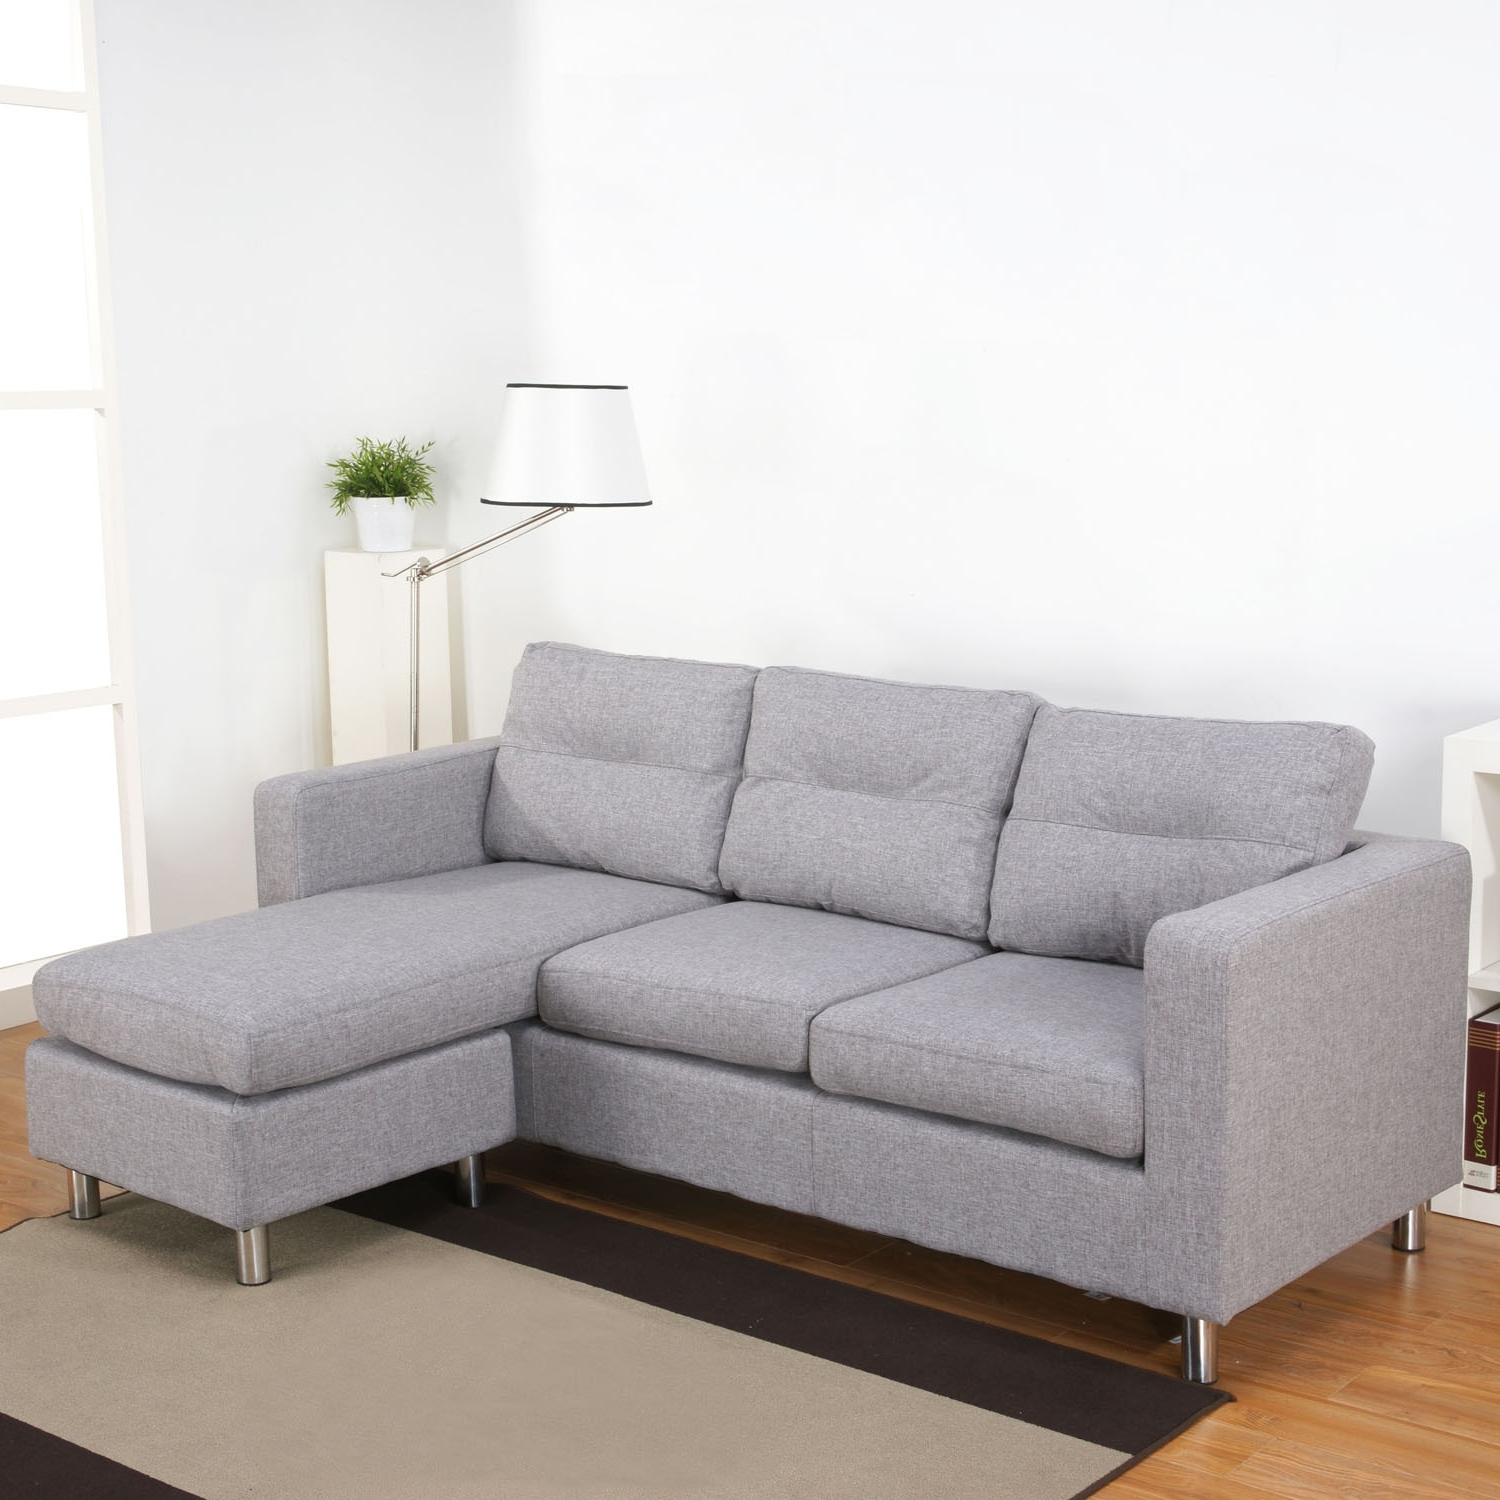 Gray Sectionals With Chaise Pertaining To Well Known Gray Sectional Sofas With Chaise (View 6 of 15)